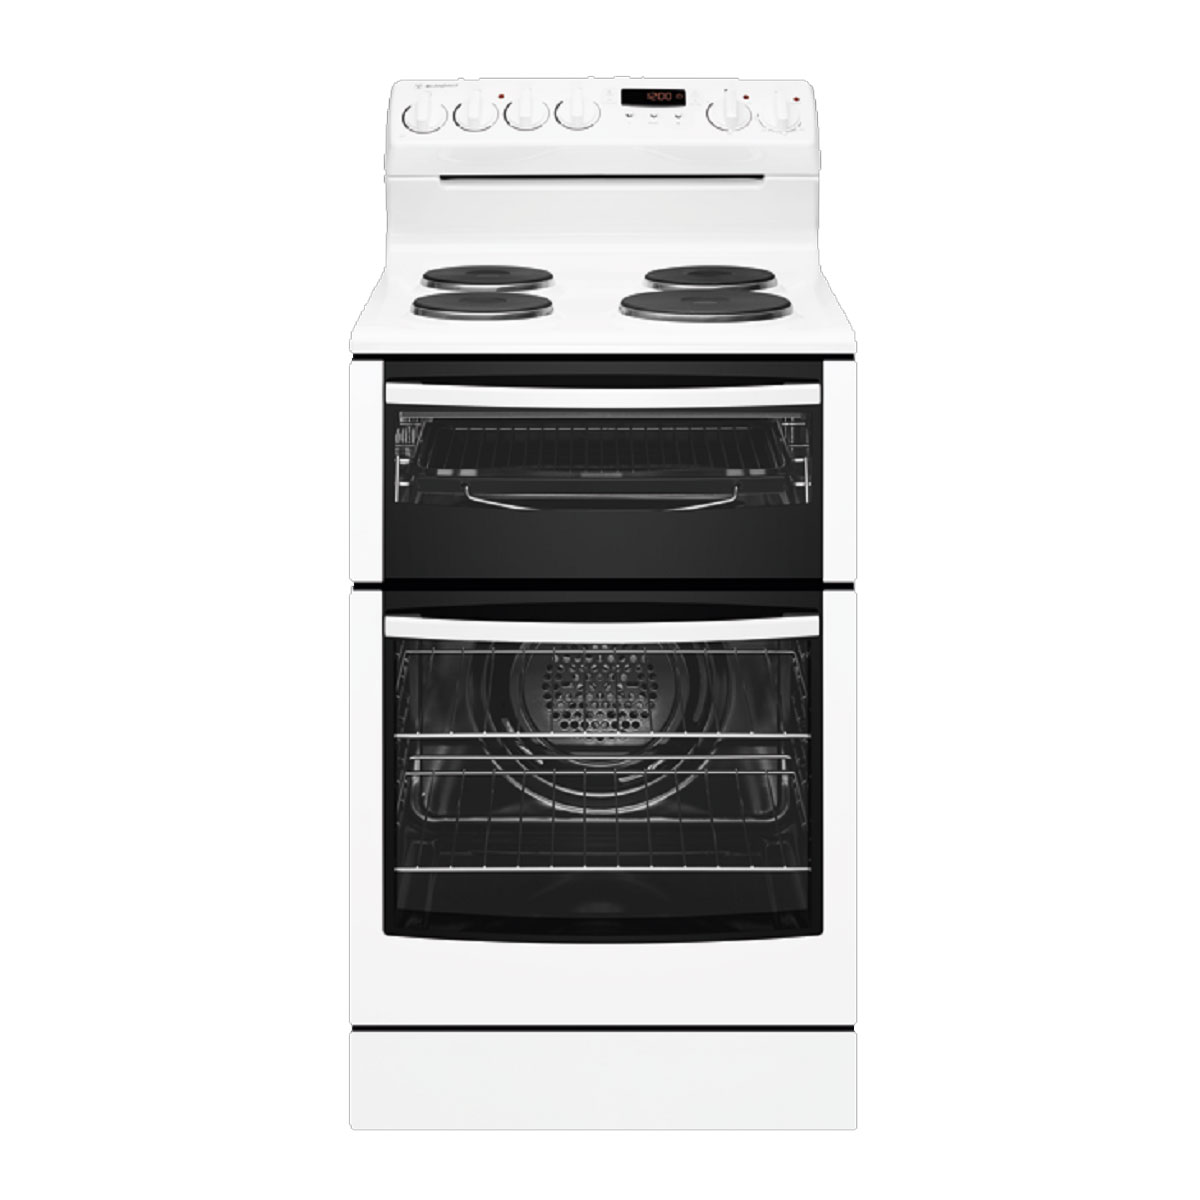 Westinghouse WLE537WA Freestanding Electric Oven/Stove